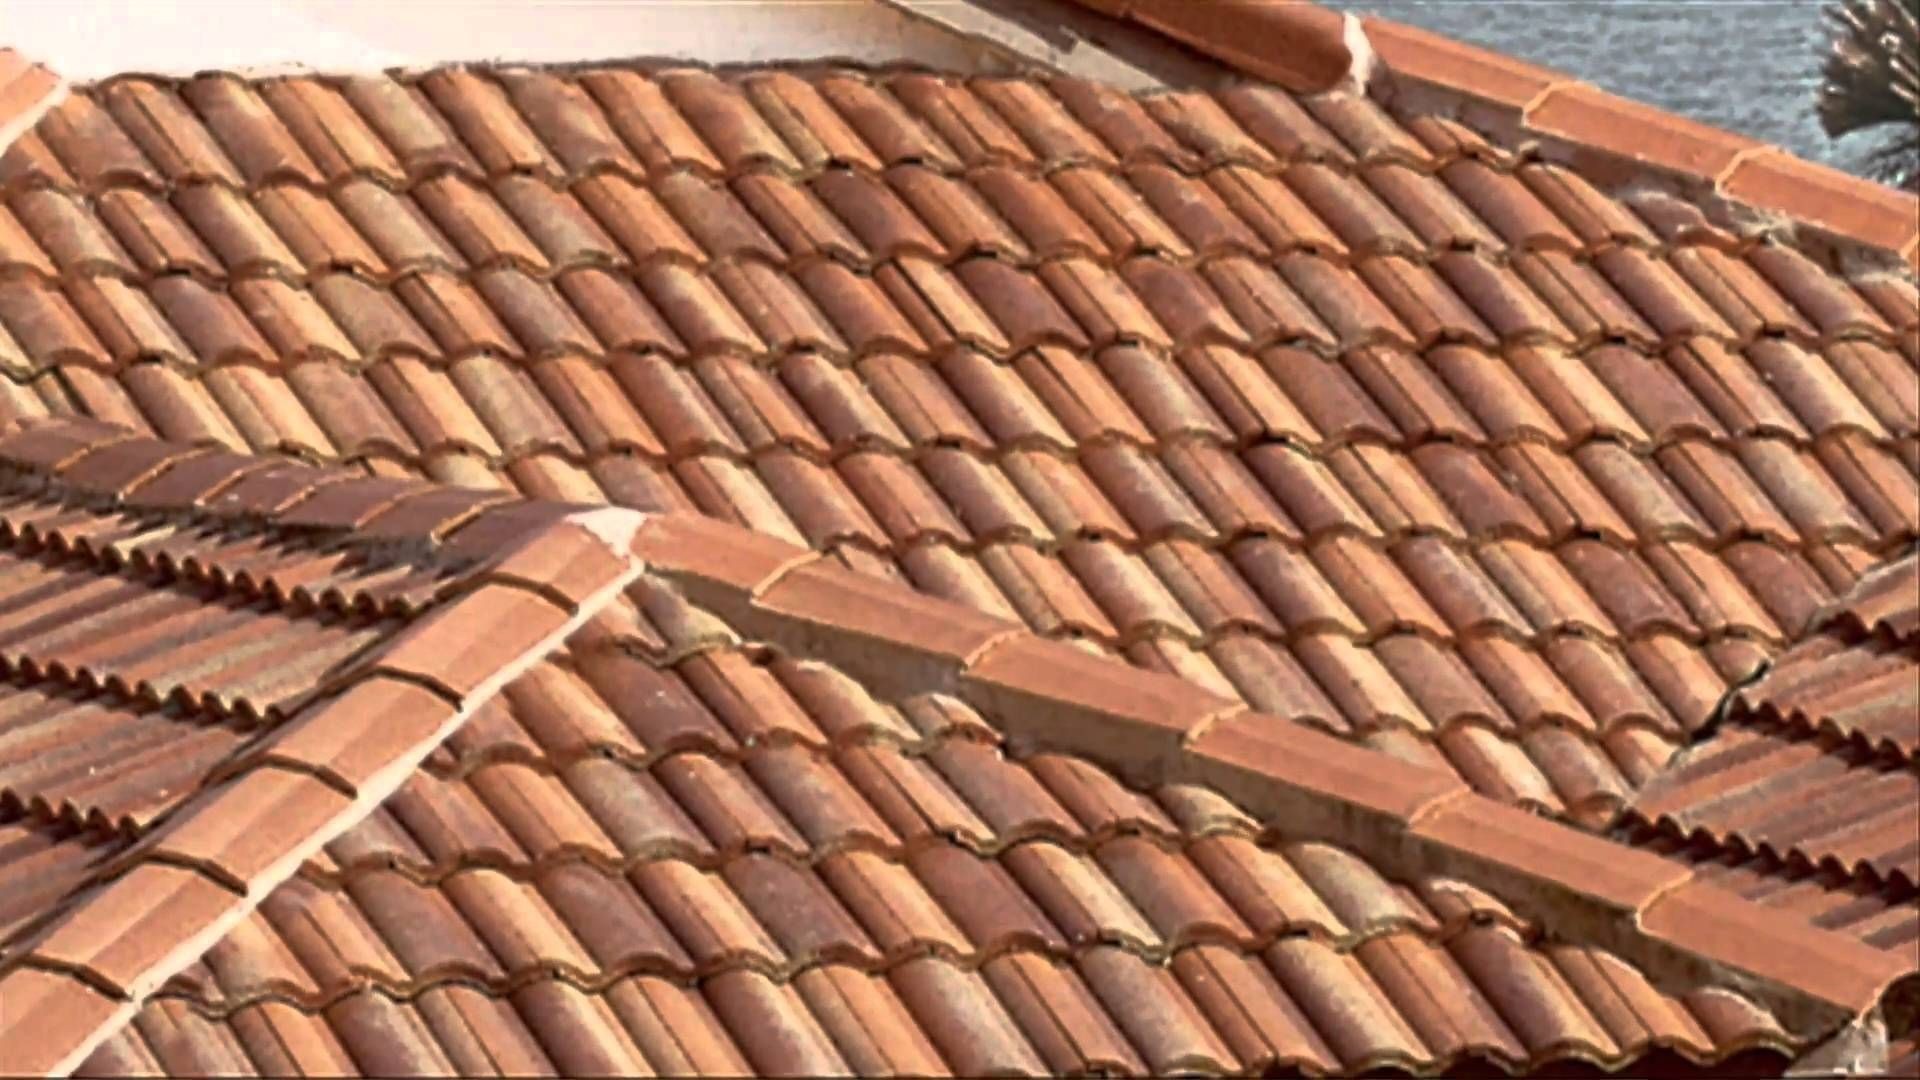 There Is A Lot To Take Into Consideration When Looking At The Different Types Of Tile Roofs Cool Roof Solar Tiles Roof Tiles